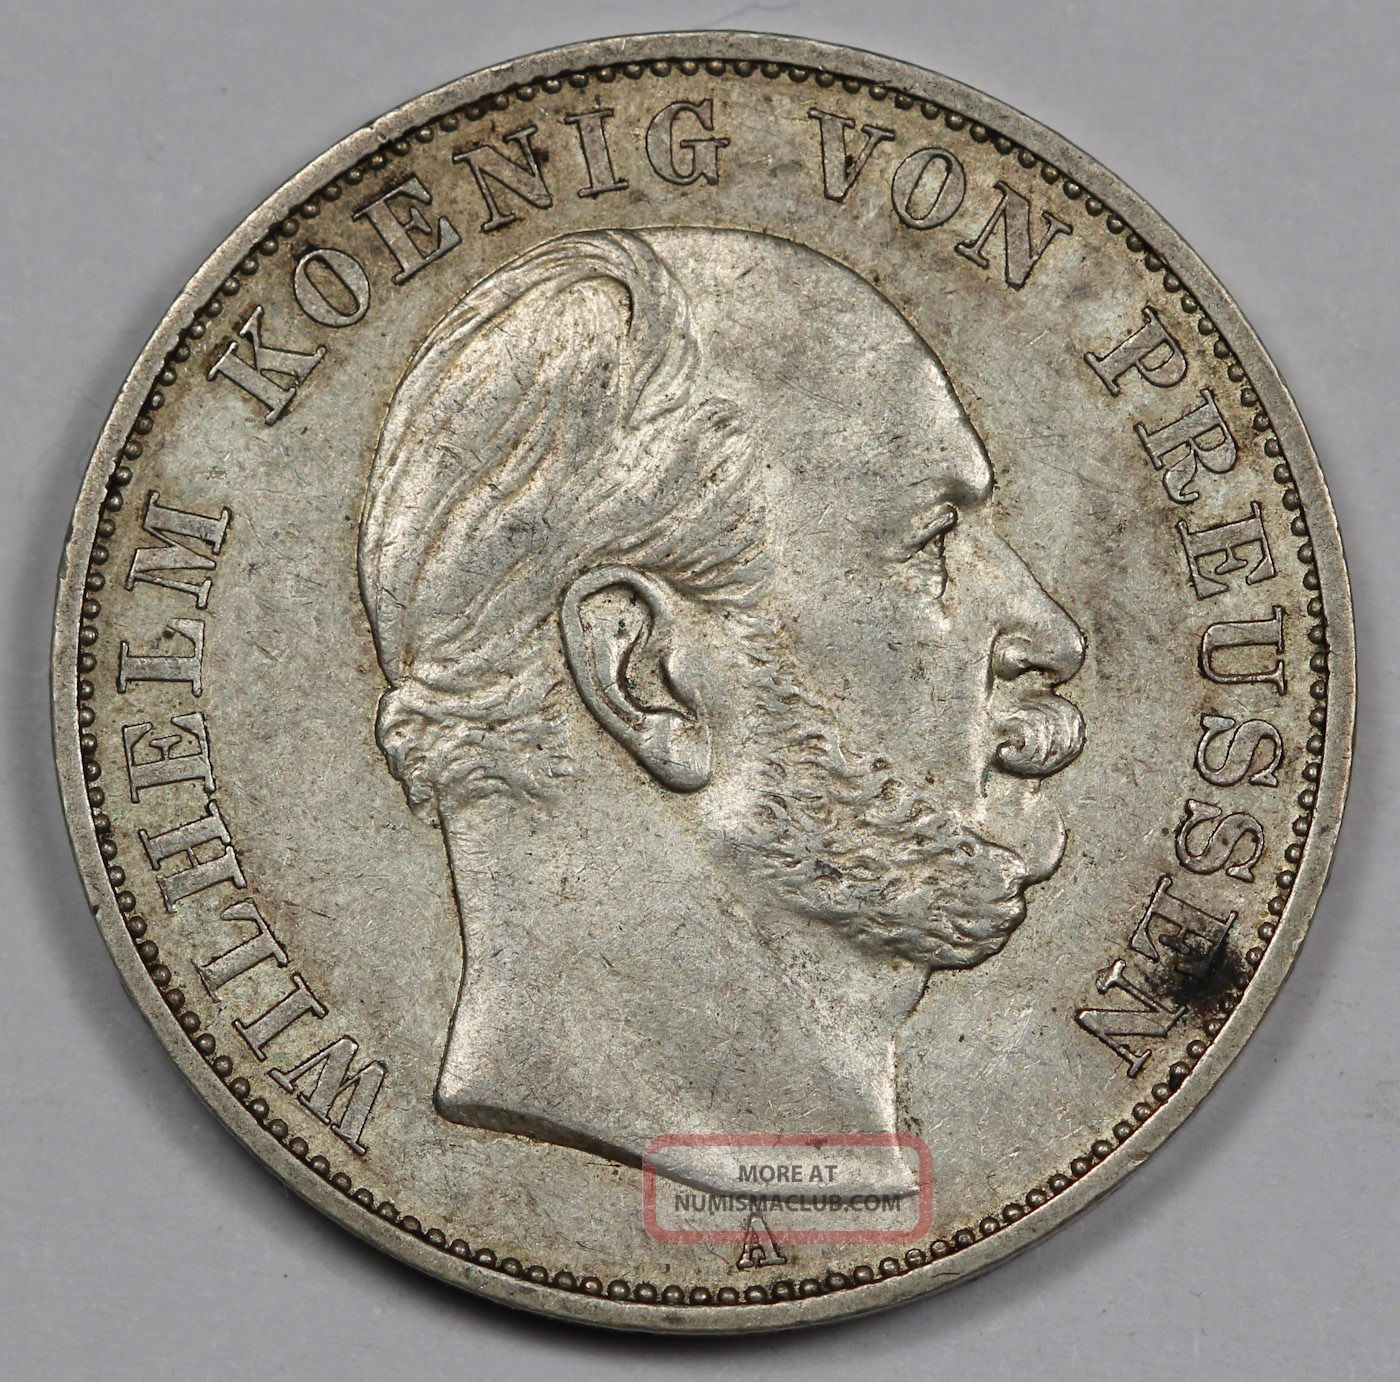 1871 A German States Prussia Thaler Victory Over France Silver Coin Xf,  Km 500 German States (up to 1871) photo